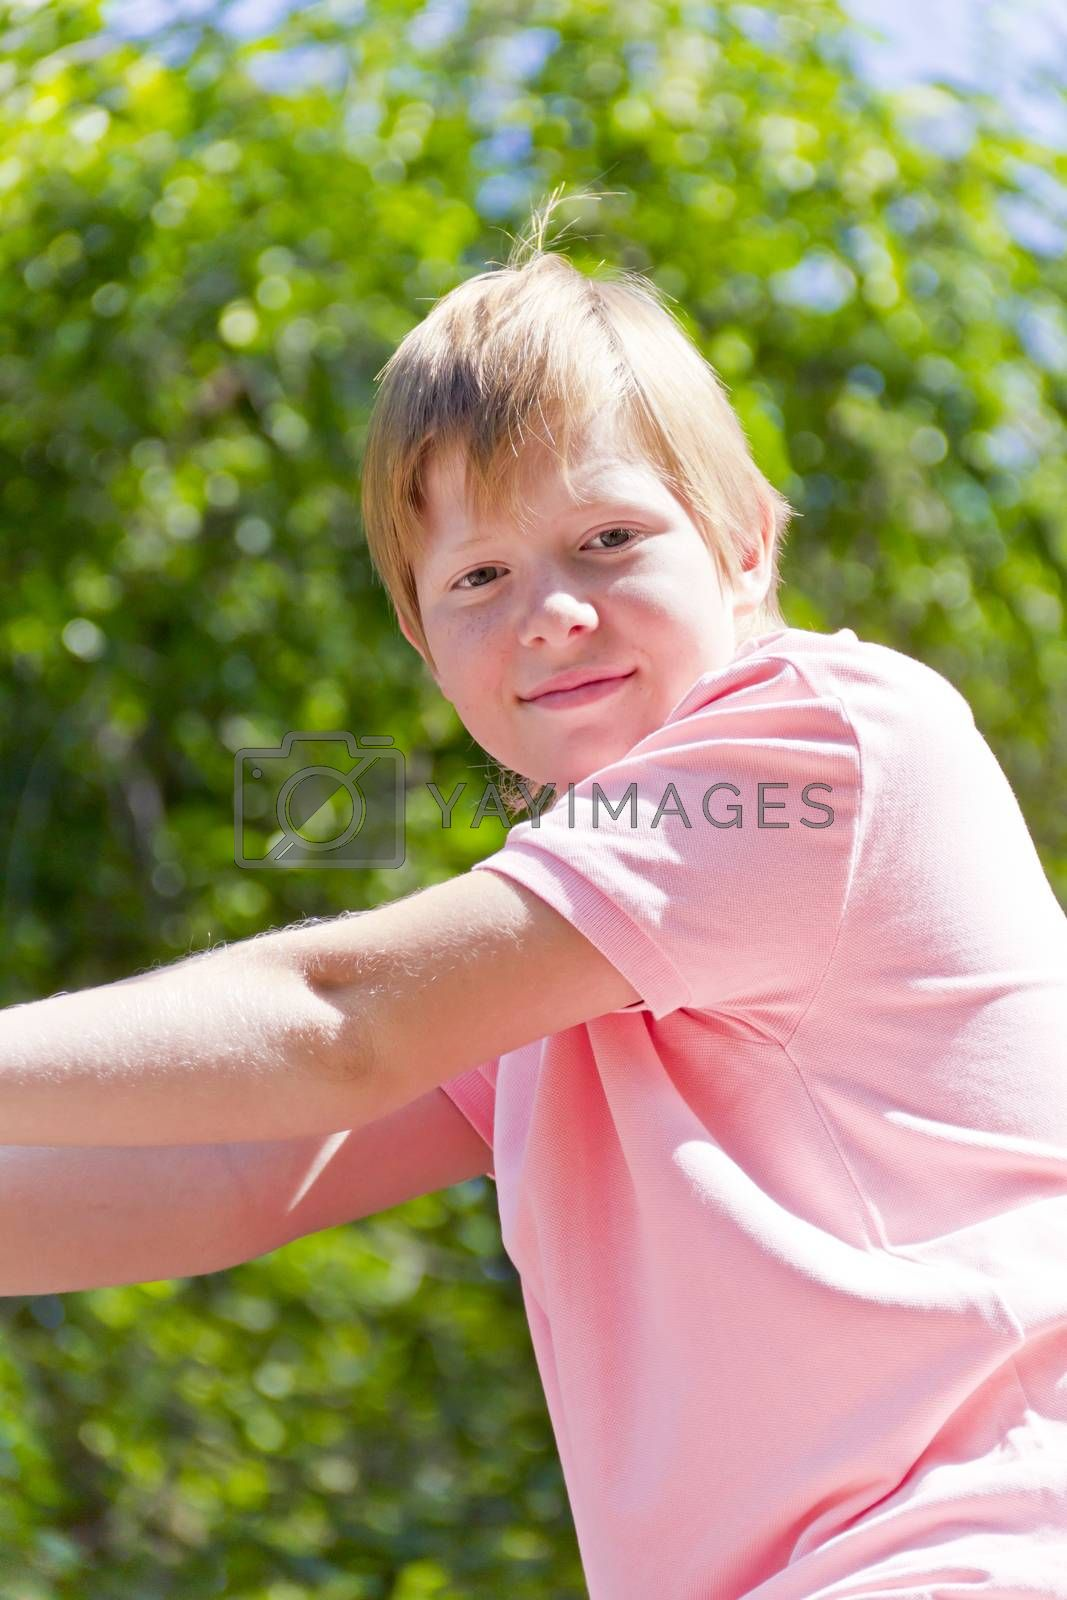 Smiling boy in pink shirt playing on stone wall